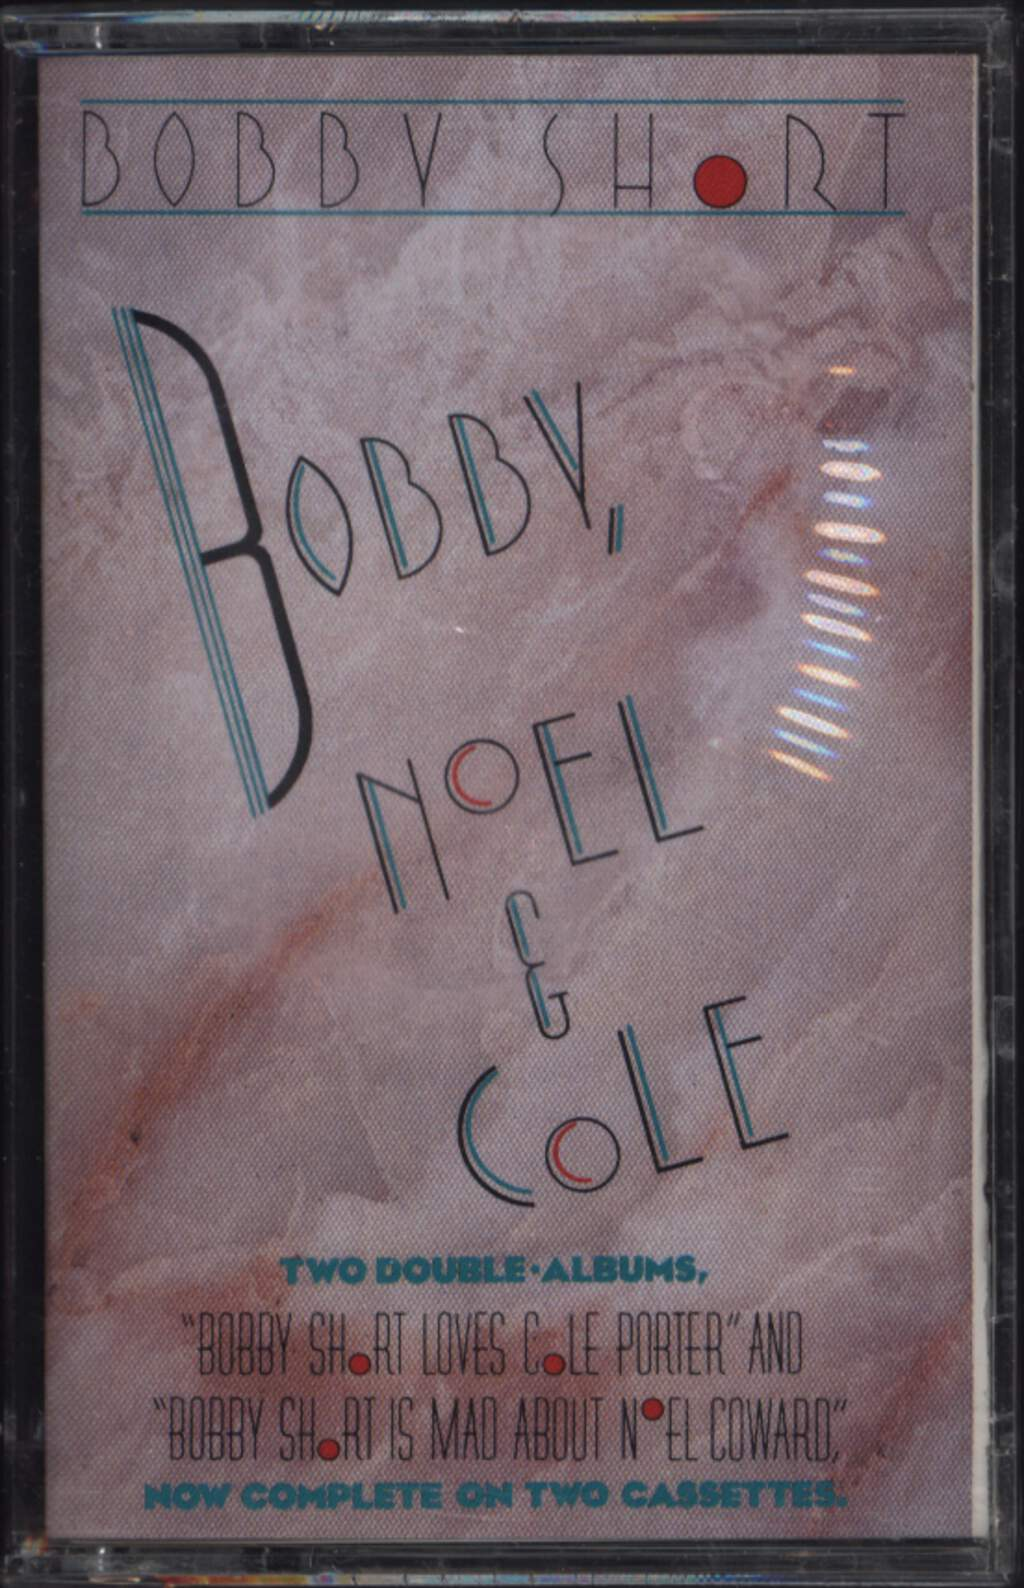 Bobby Short: Bobby Short Loves Cole Porter / Bobby Short Is Mad About Noel Coward, Compact Cassette